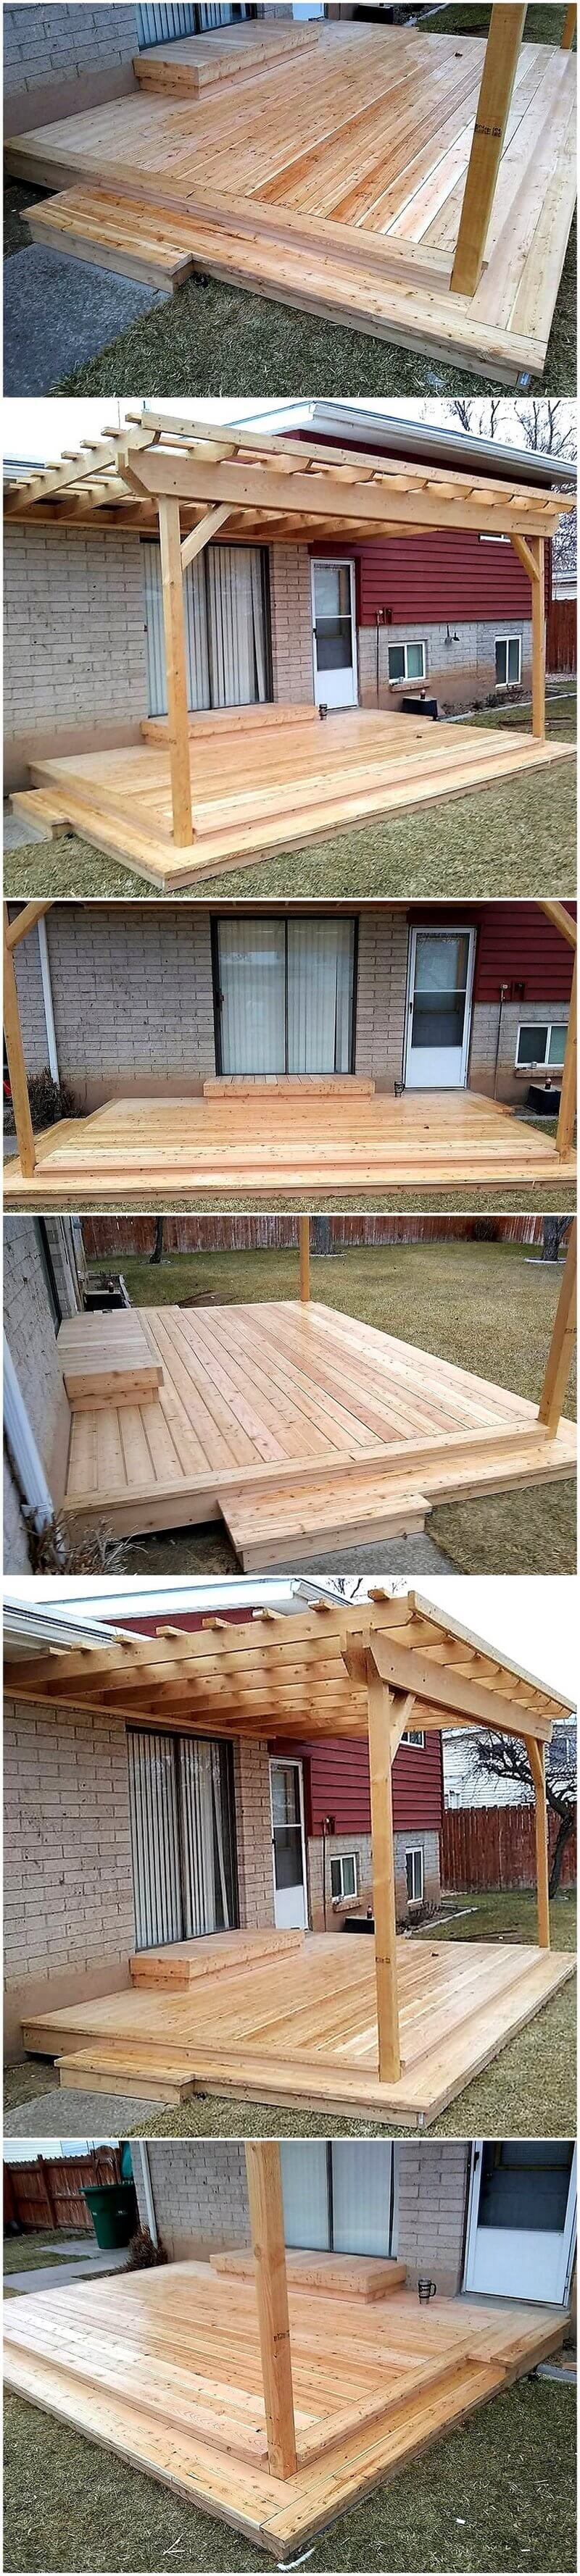 Amazing Ideas For Wooden Pallets Repurposing